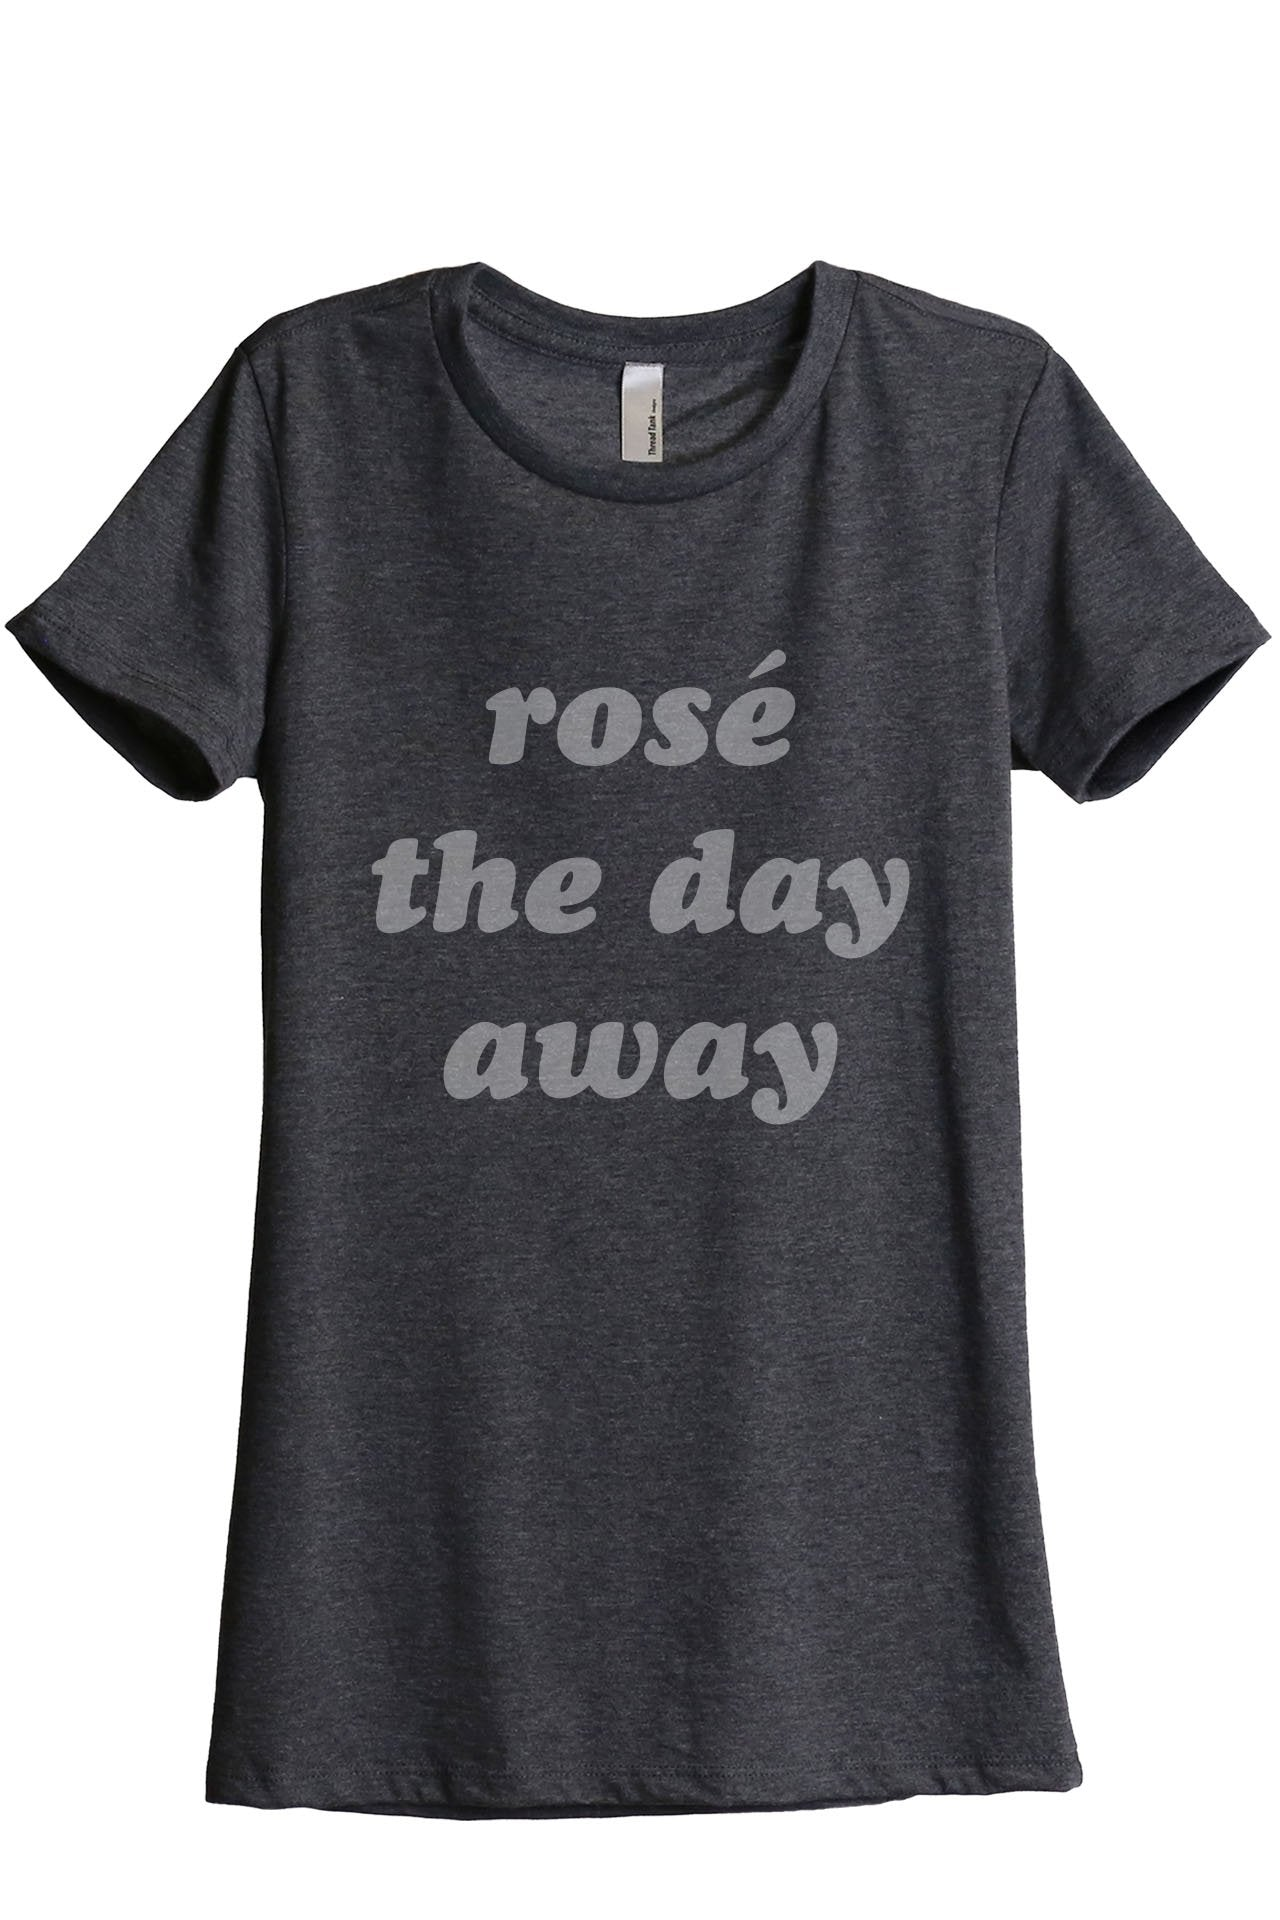 Rose The Day Away Women's Relaxed Crewneck T-Shirt Top Tee Charcoal Grey